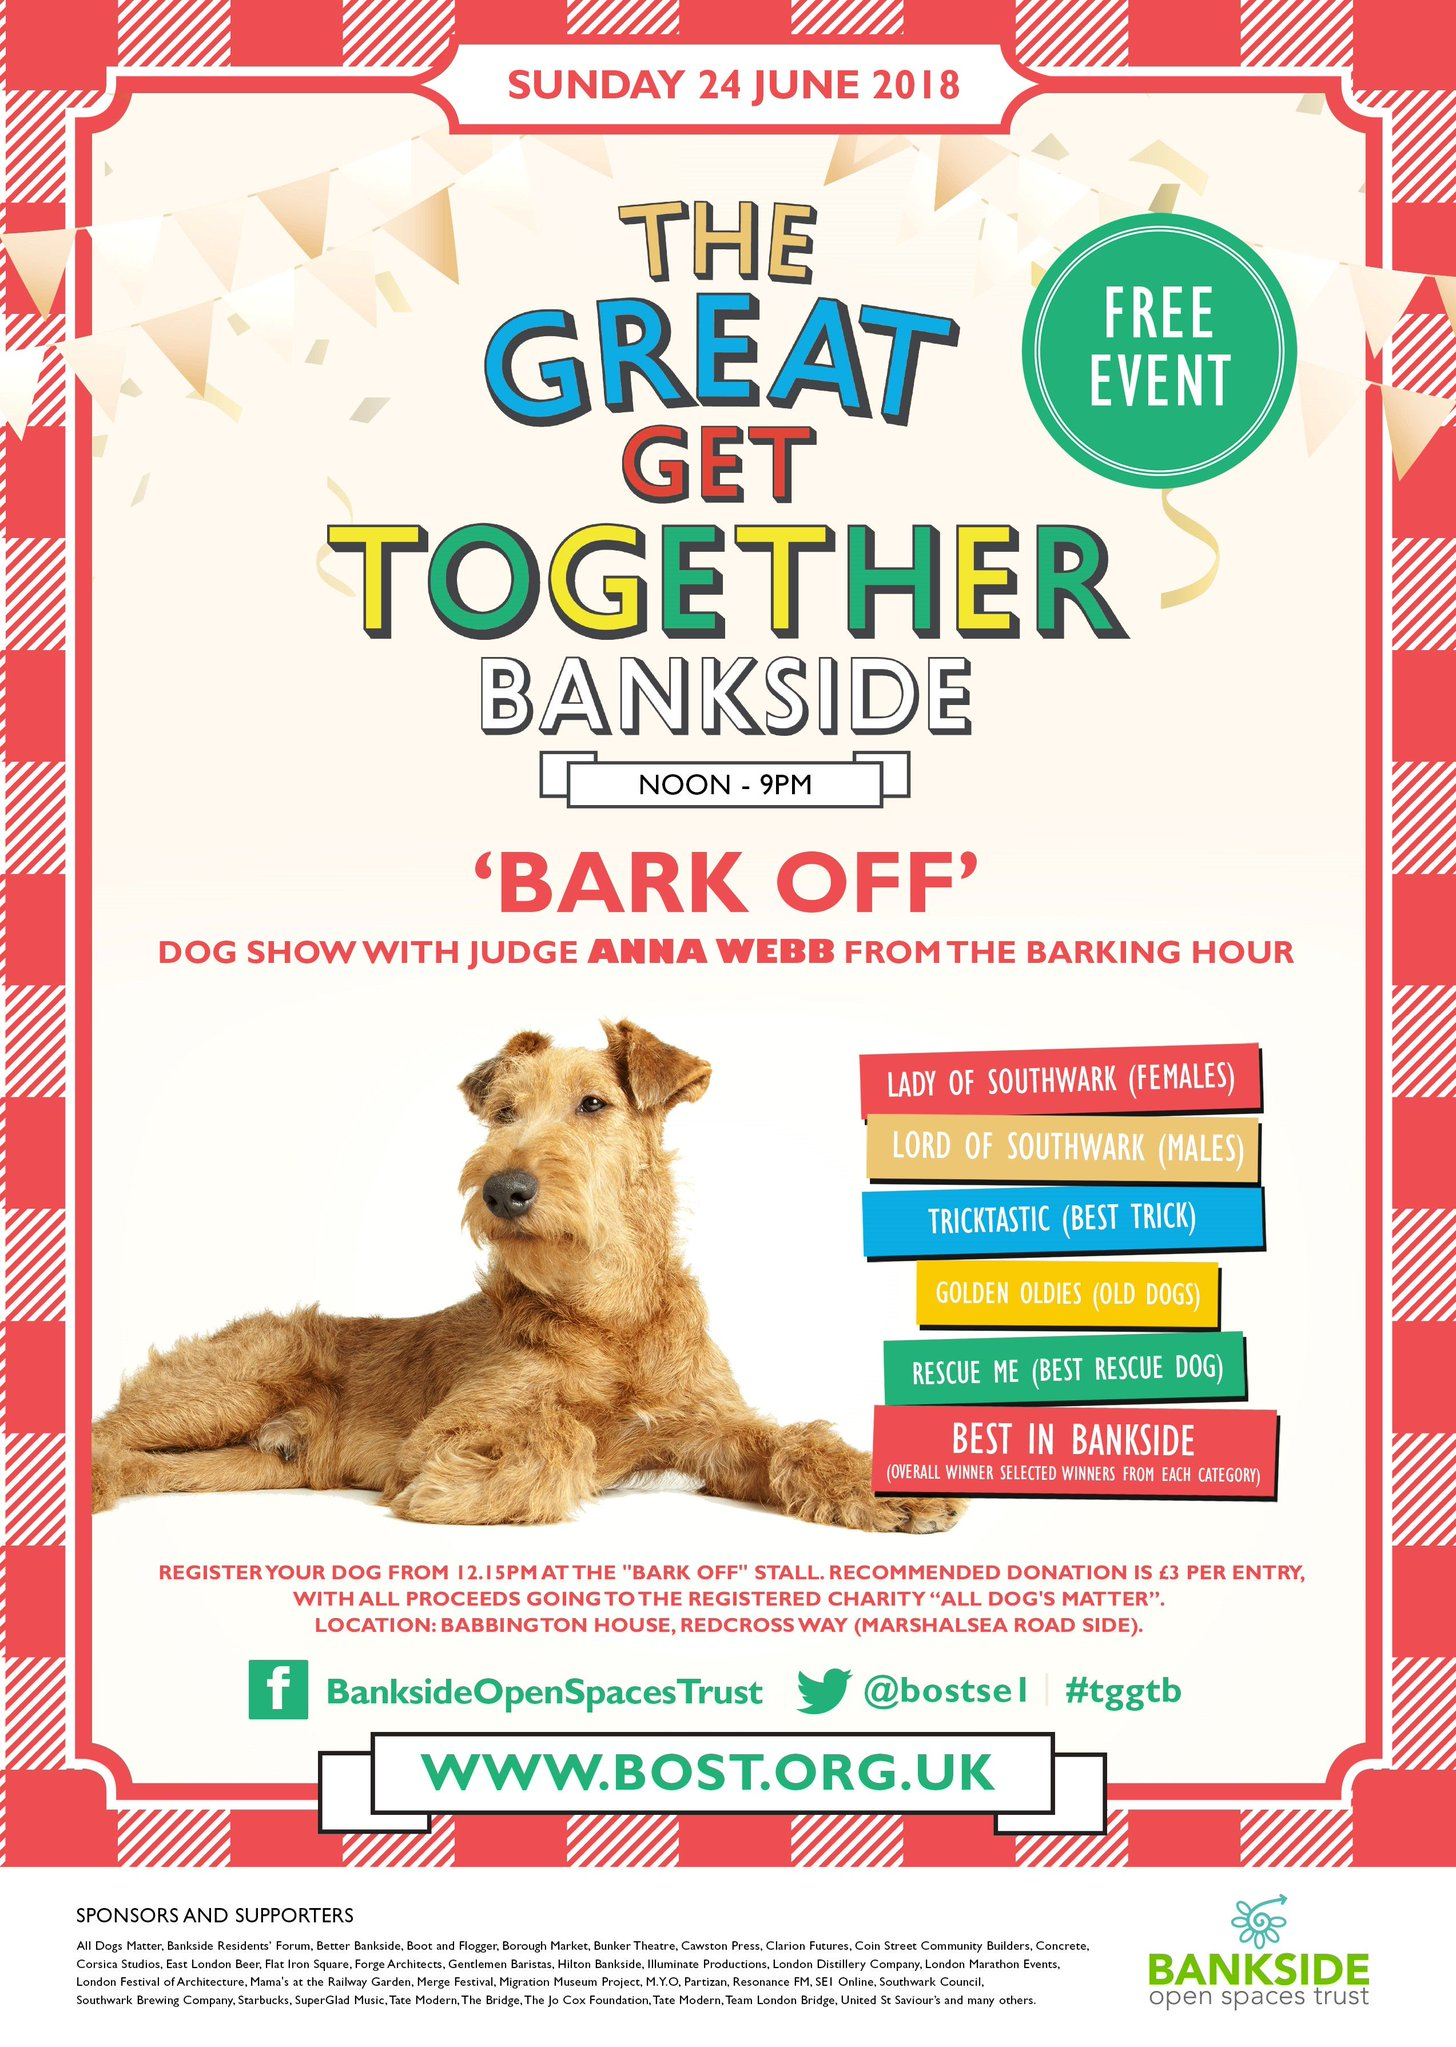 The great get together bankside bark off dog show 2018